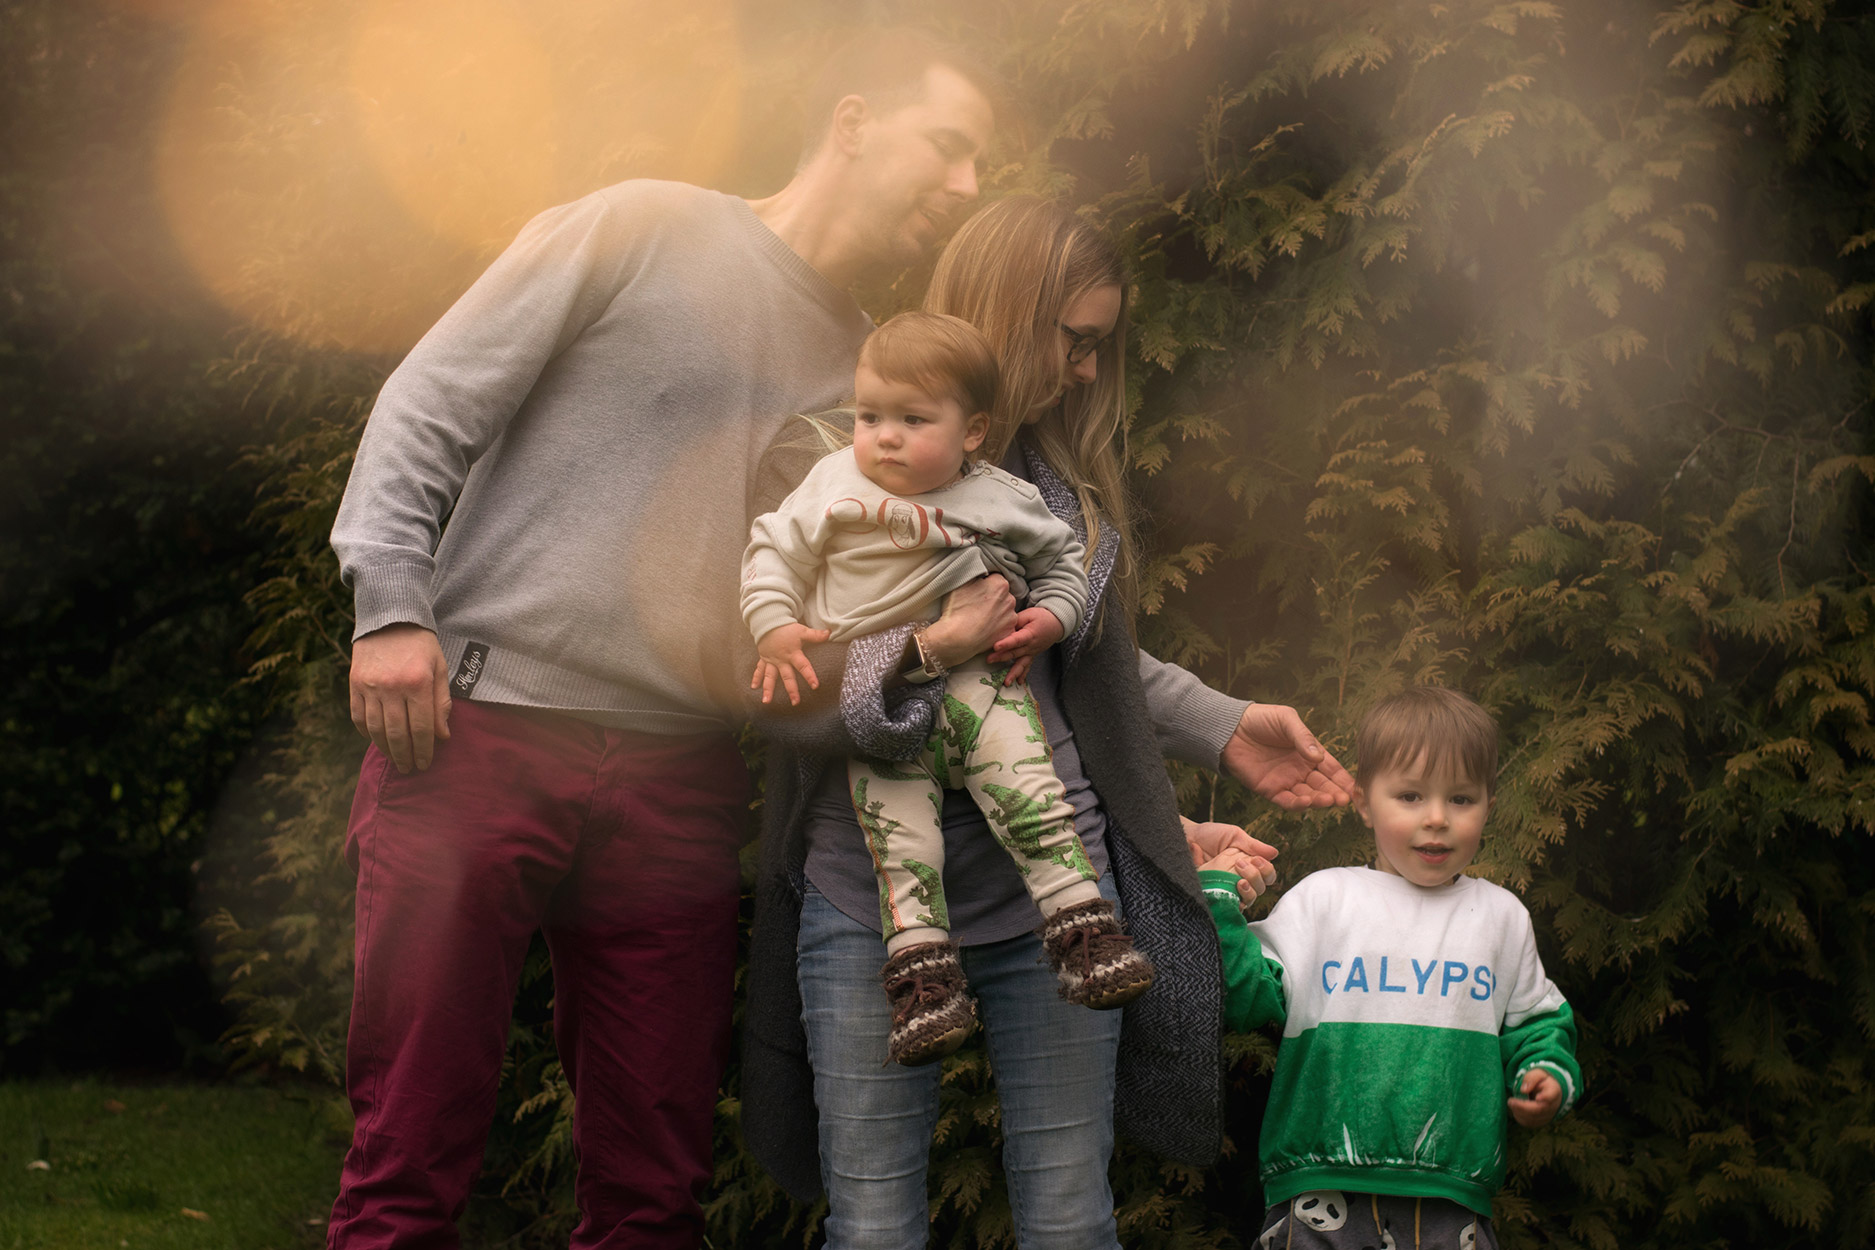 Family of four with two young brothers wearing Bobo Choses BOW and Calypso sweatshirts and Lamb & Bear crocs leggings for family photoshoot amongst snowdrops